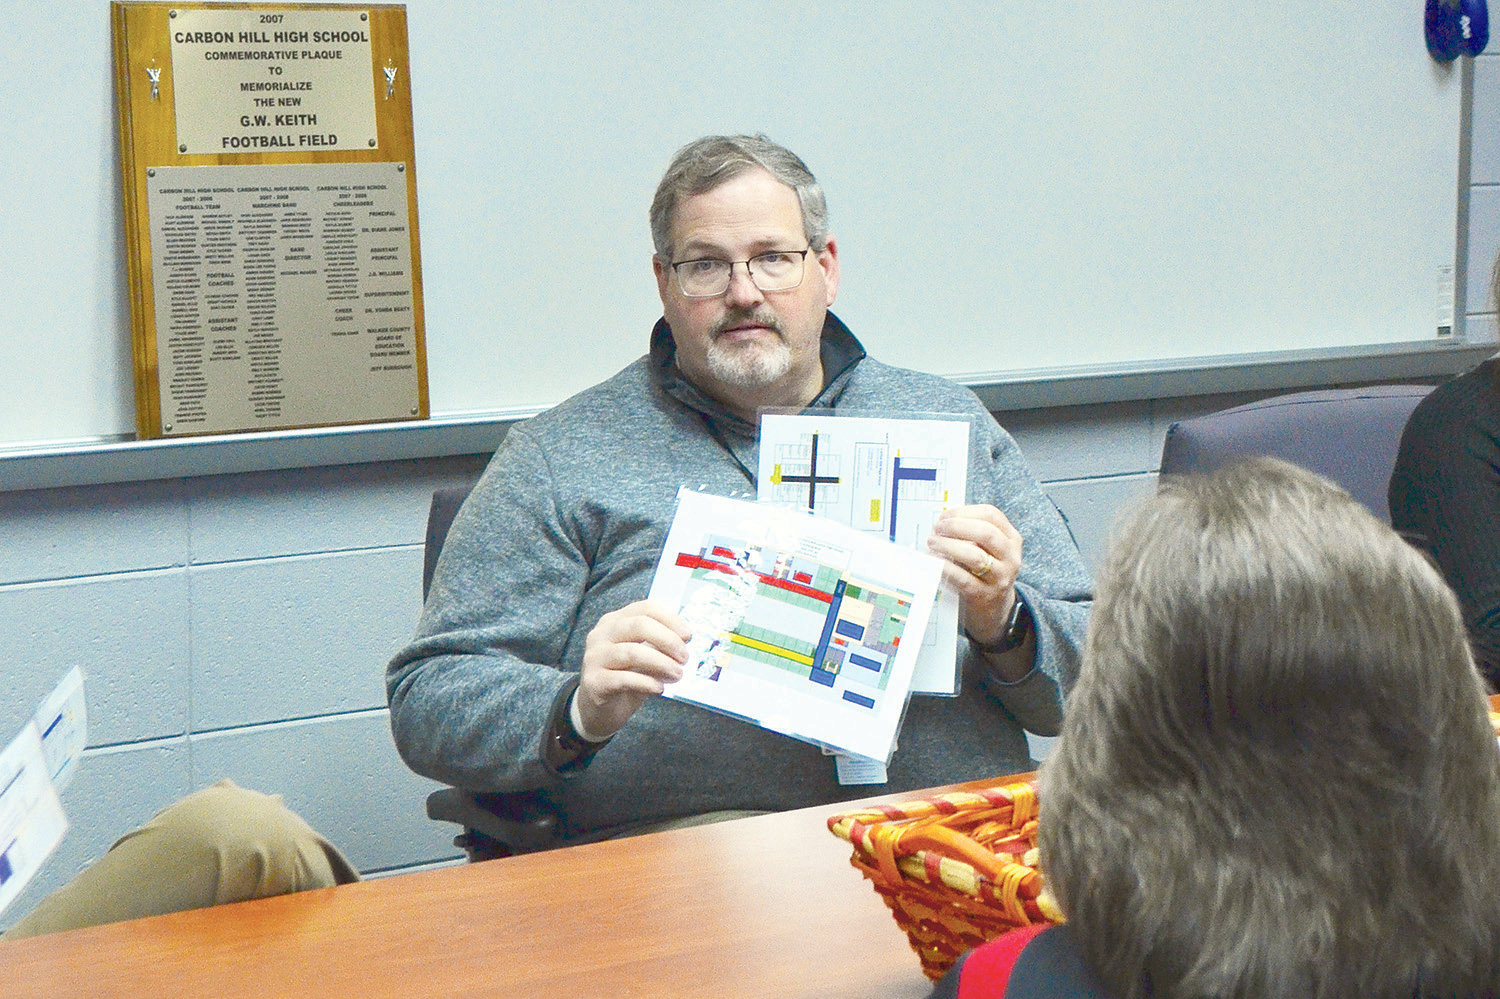 Carbon Hill Elementary/Jr. High Principal Dr. Jami Rainey shows a map to representatives with Walker County E-911 that demonstrates how color coding is being used for emergency navigation in the school building.